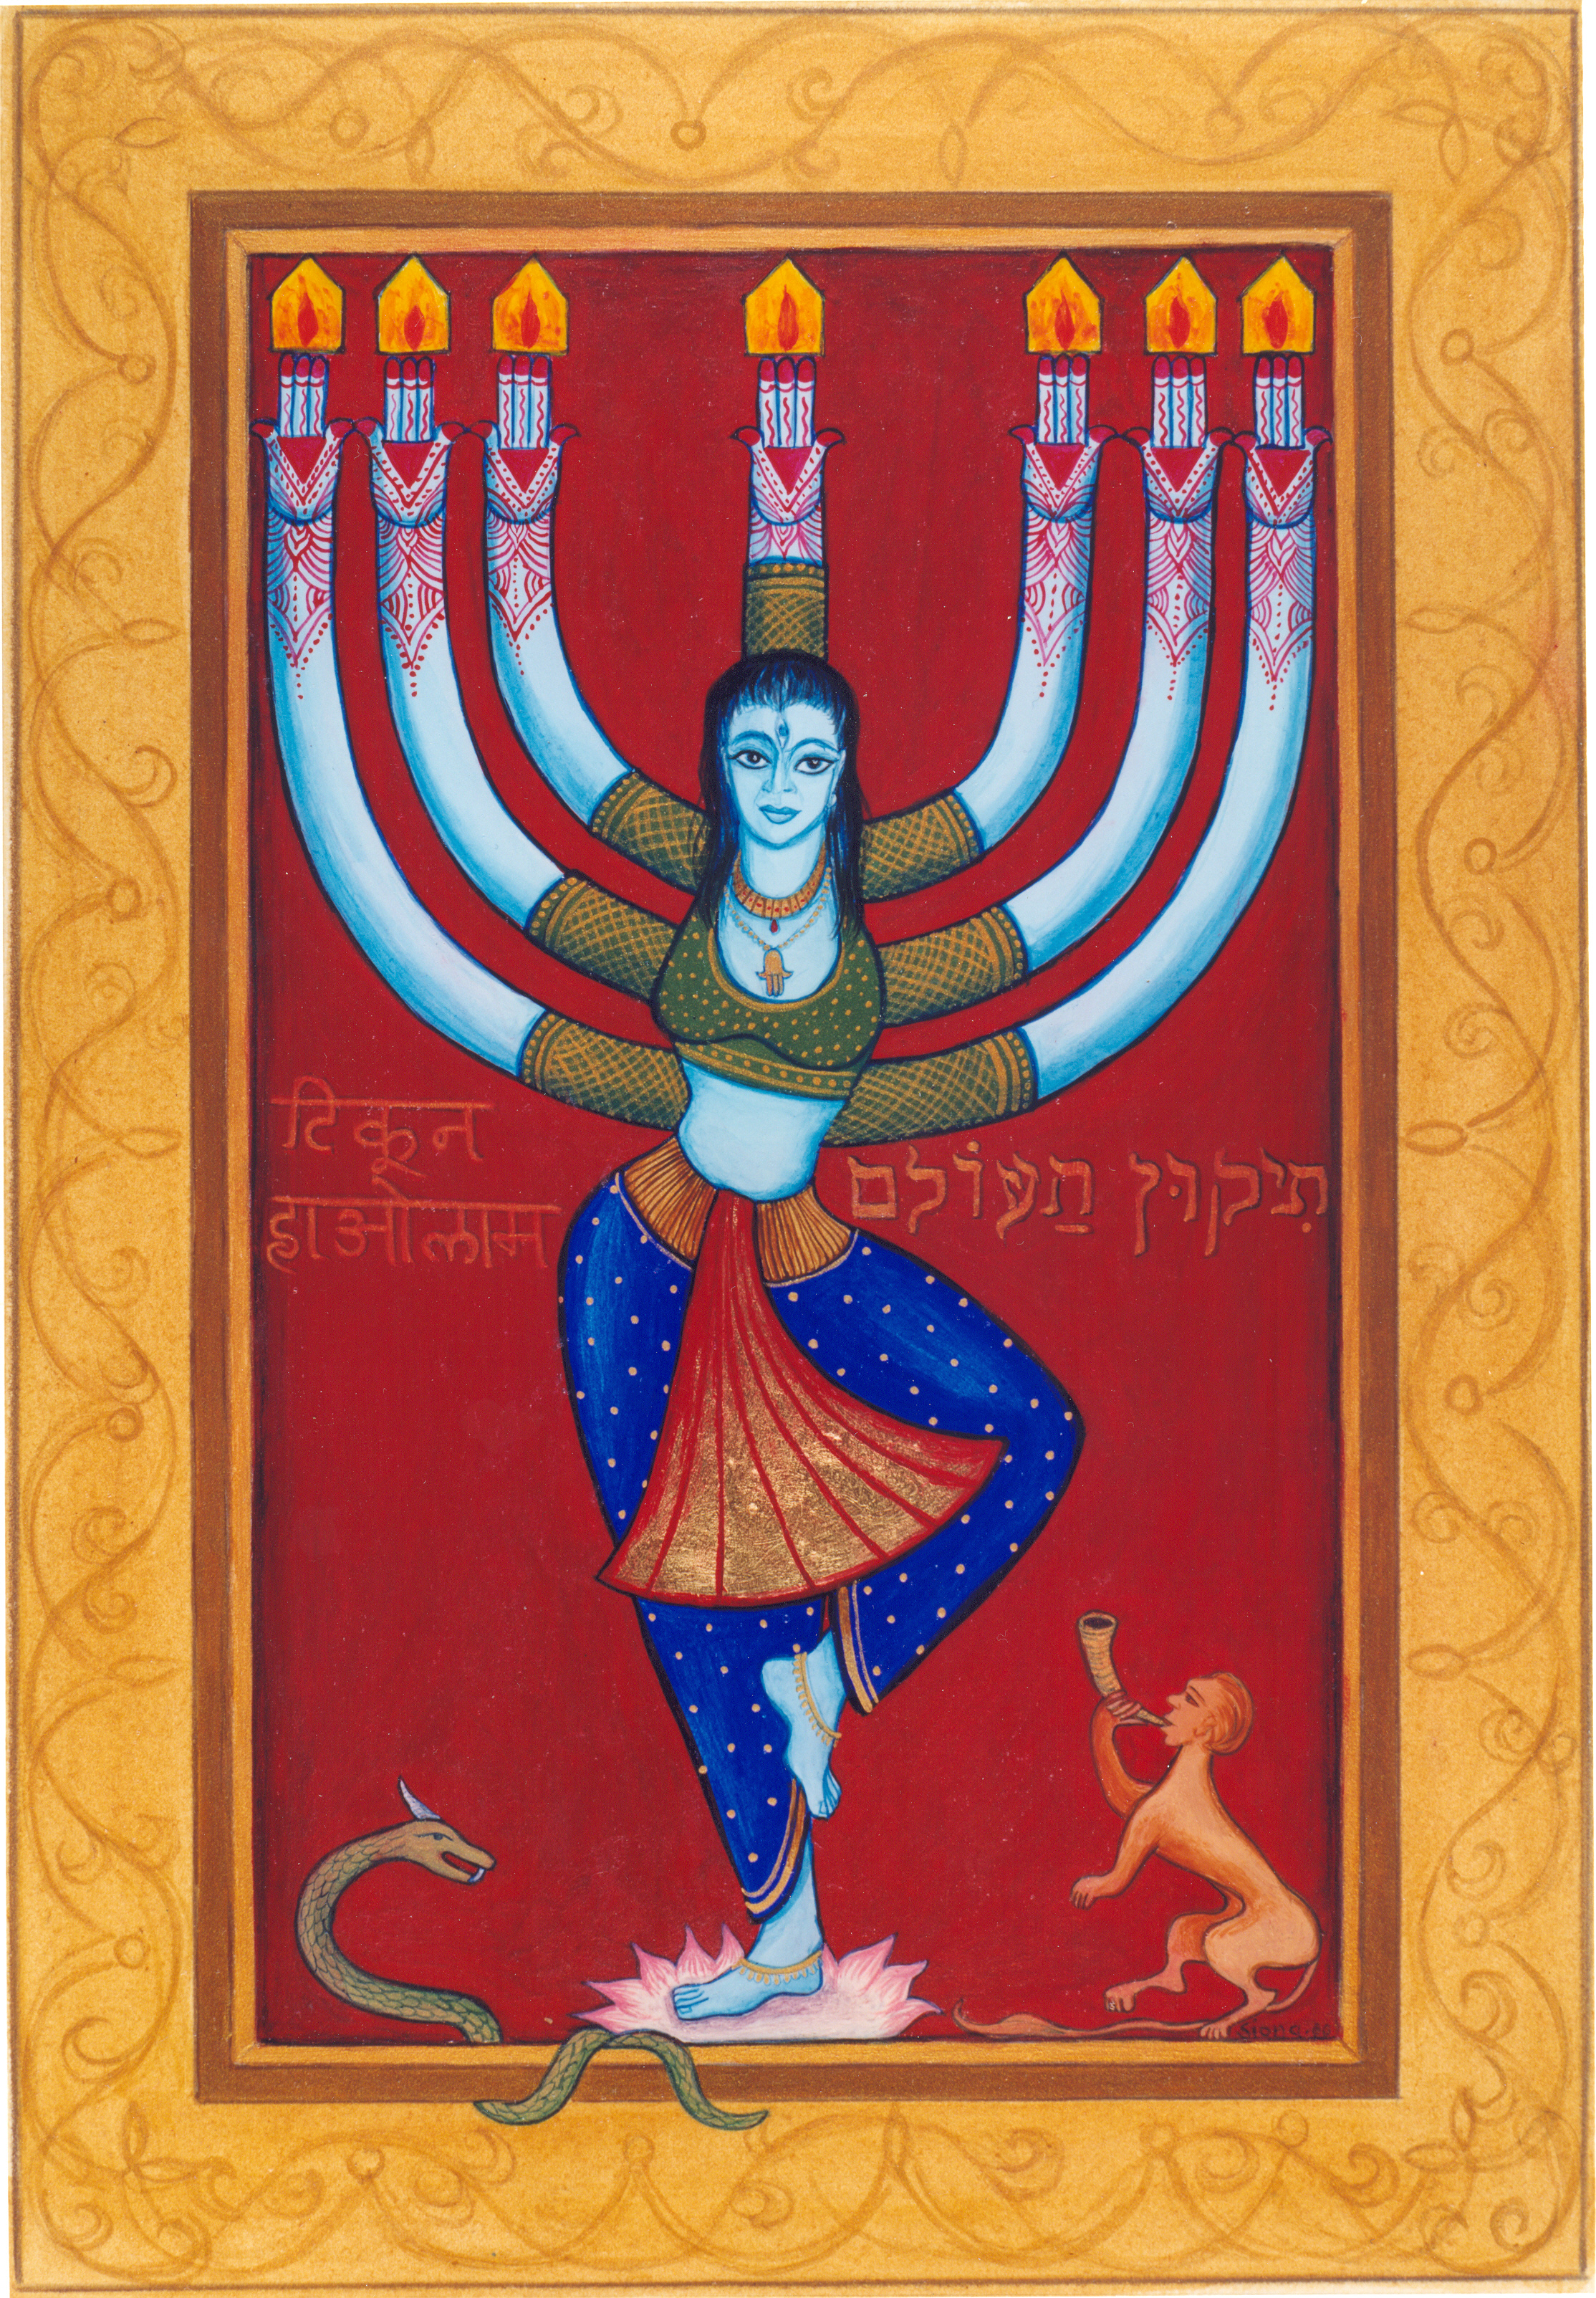 Photograph of the painting Tikkun Olam described in the text.